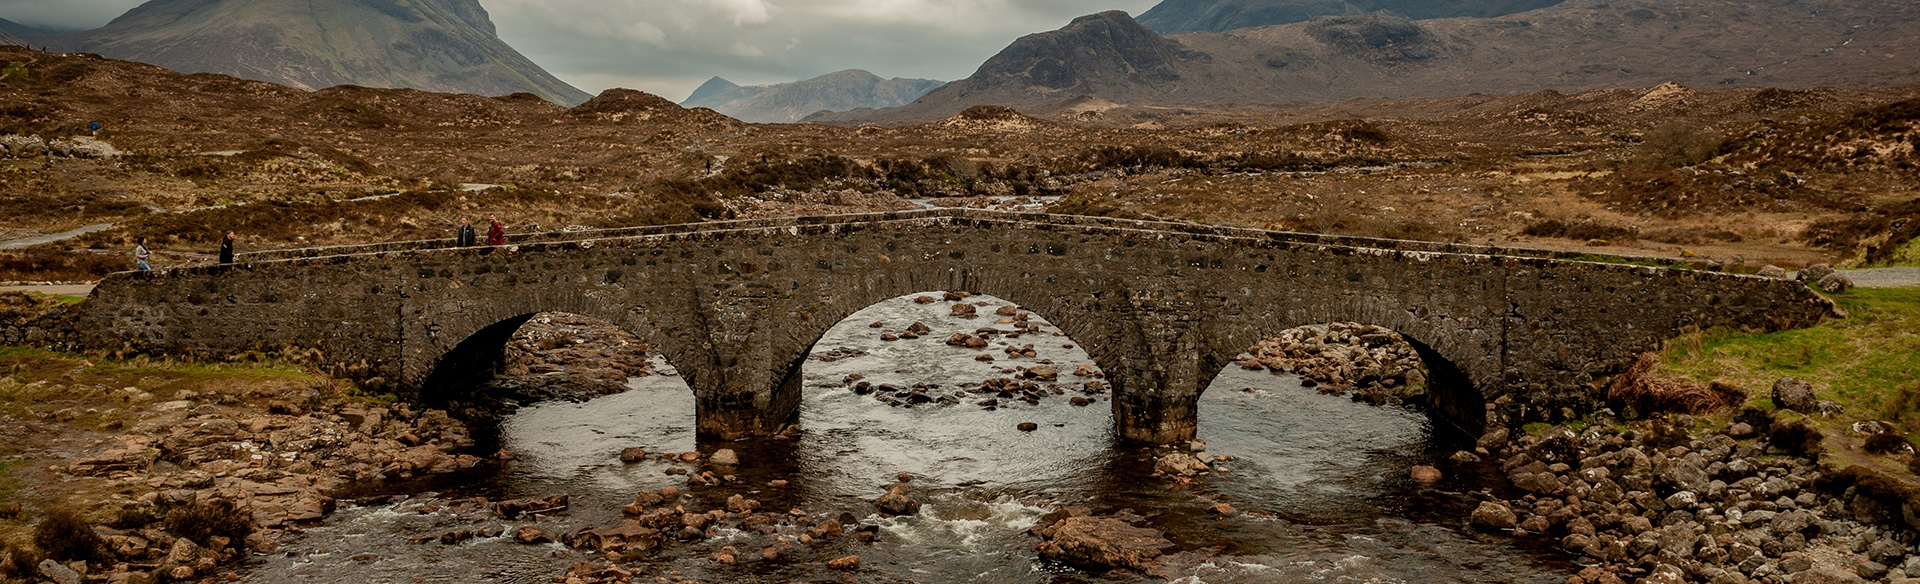 The Enchanted Waters of Sligachan